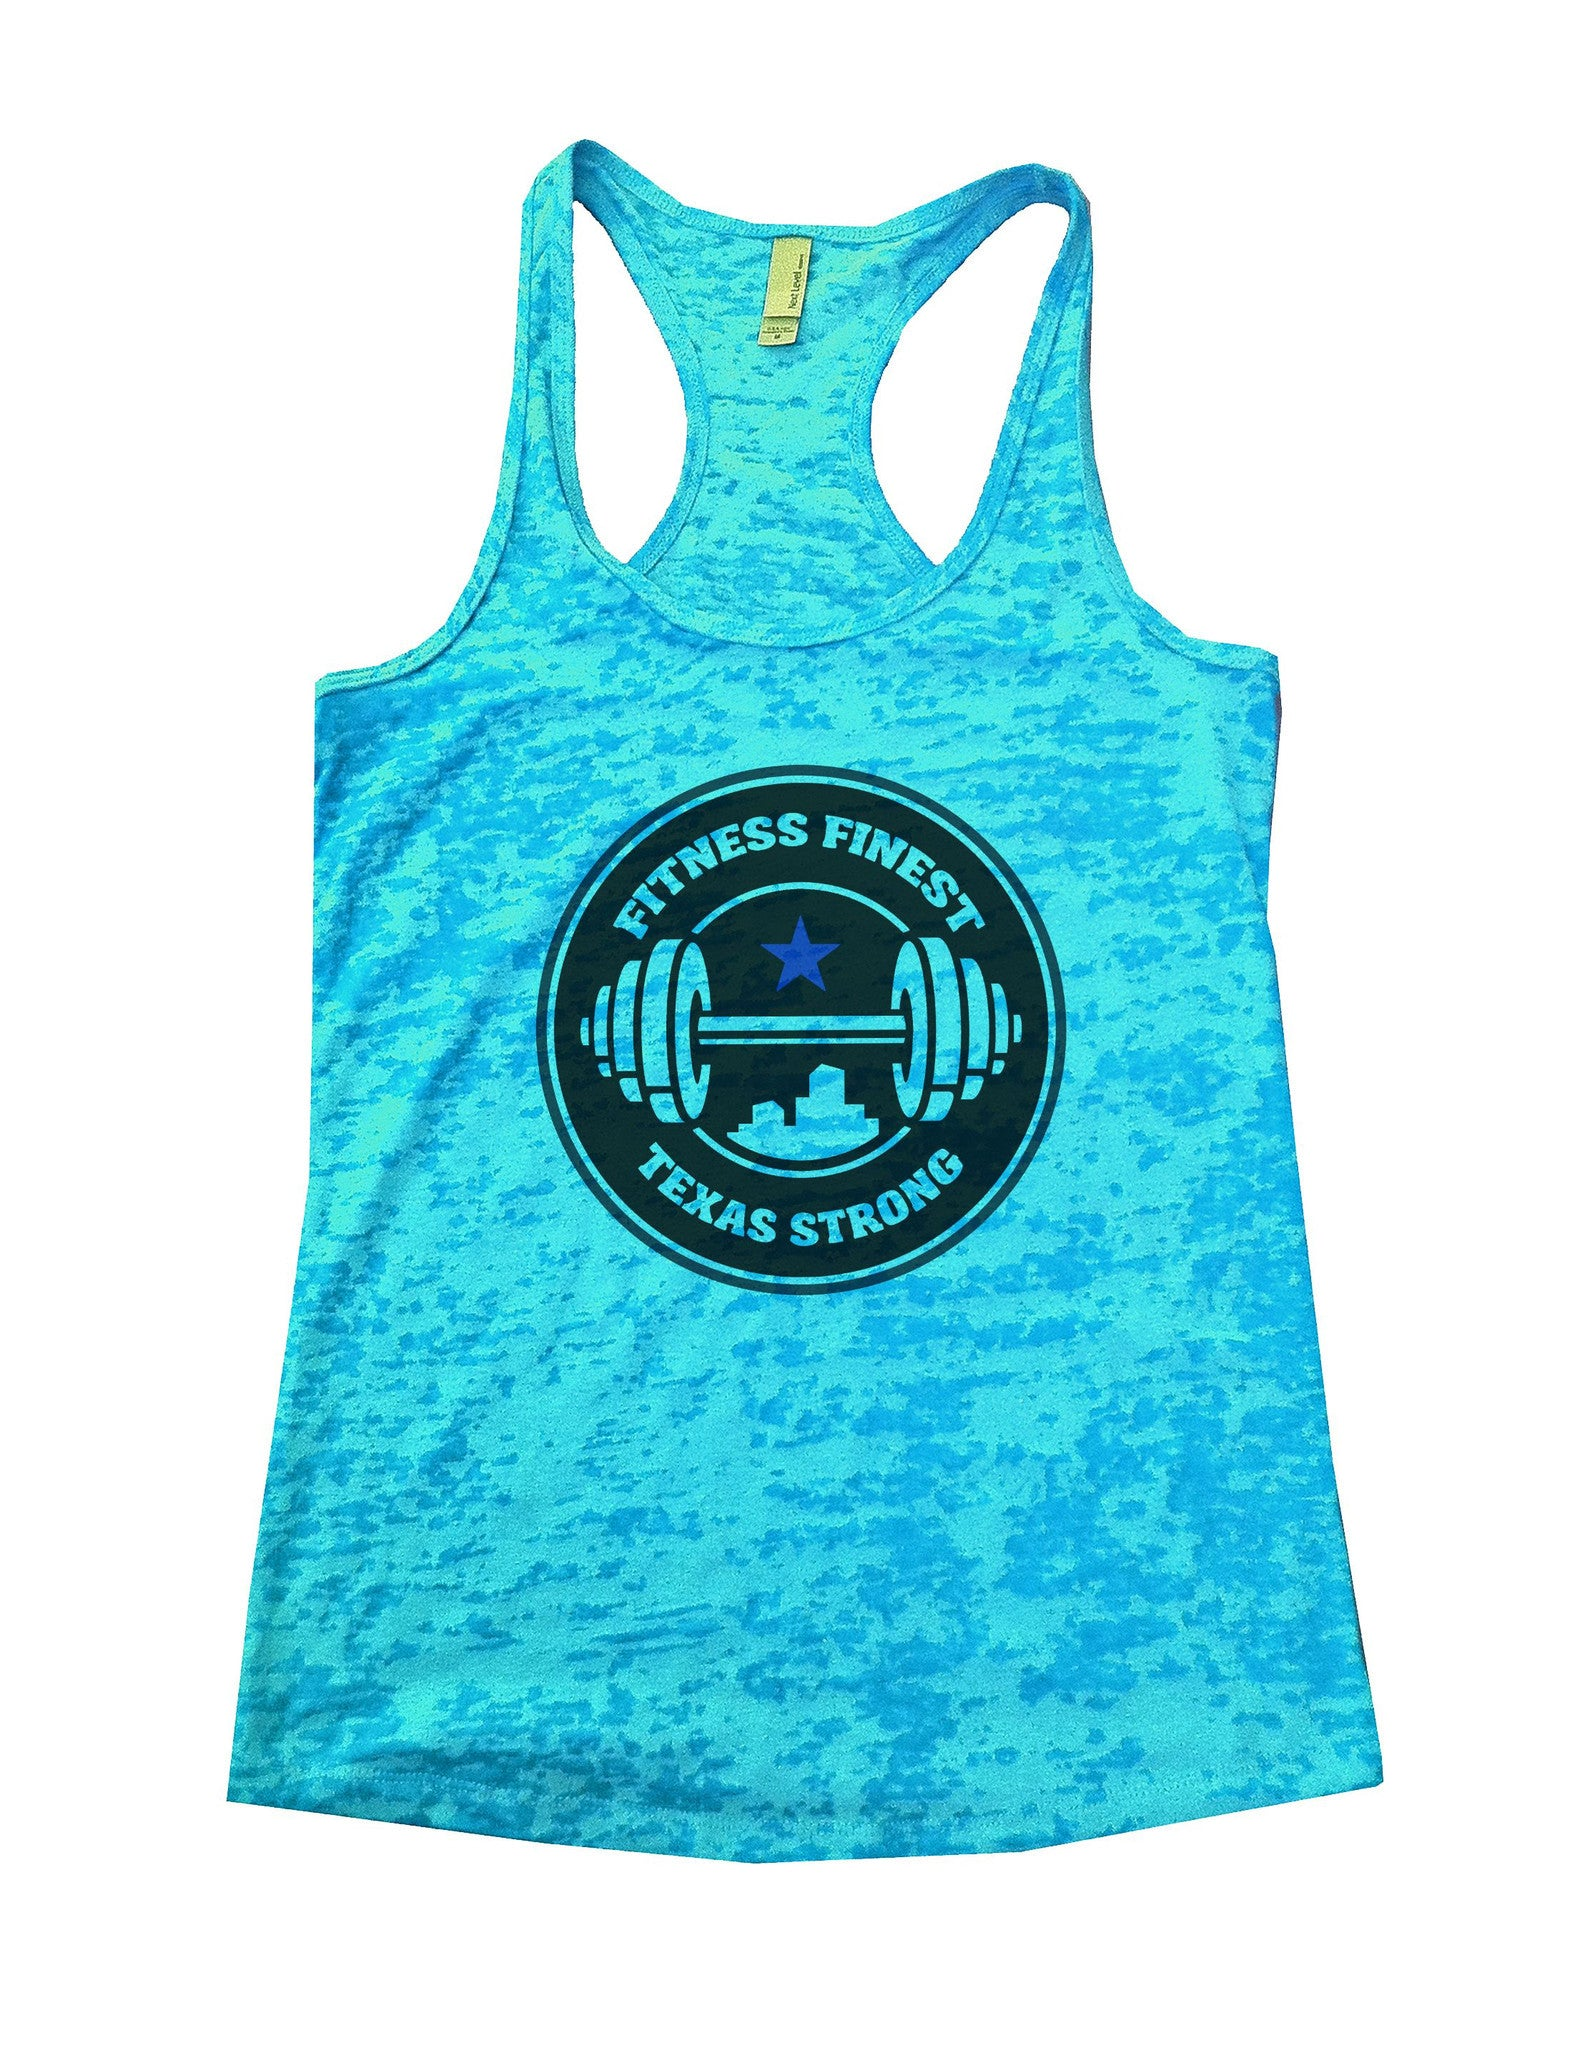 Fitness Finest Texas Strong Burnout Tank Top By BurnoutTankTops.com - 778 - Funny Shirts Tank Tops Burnouts and Triblends  - 4